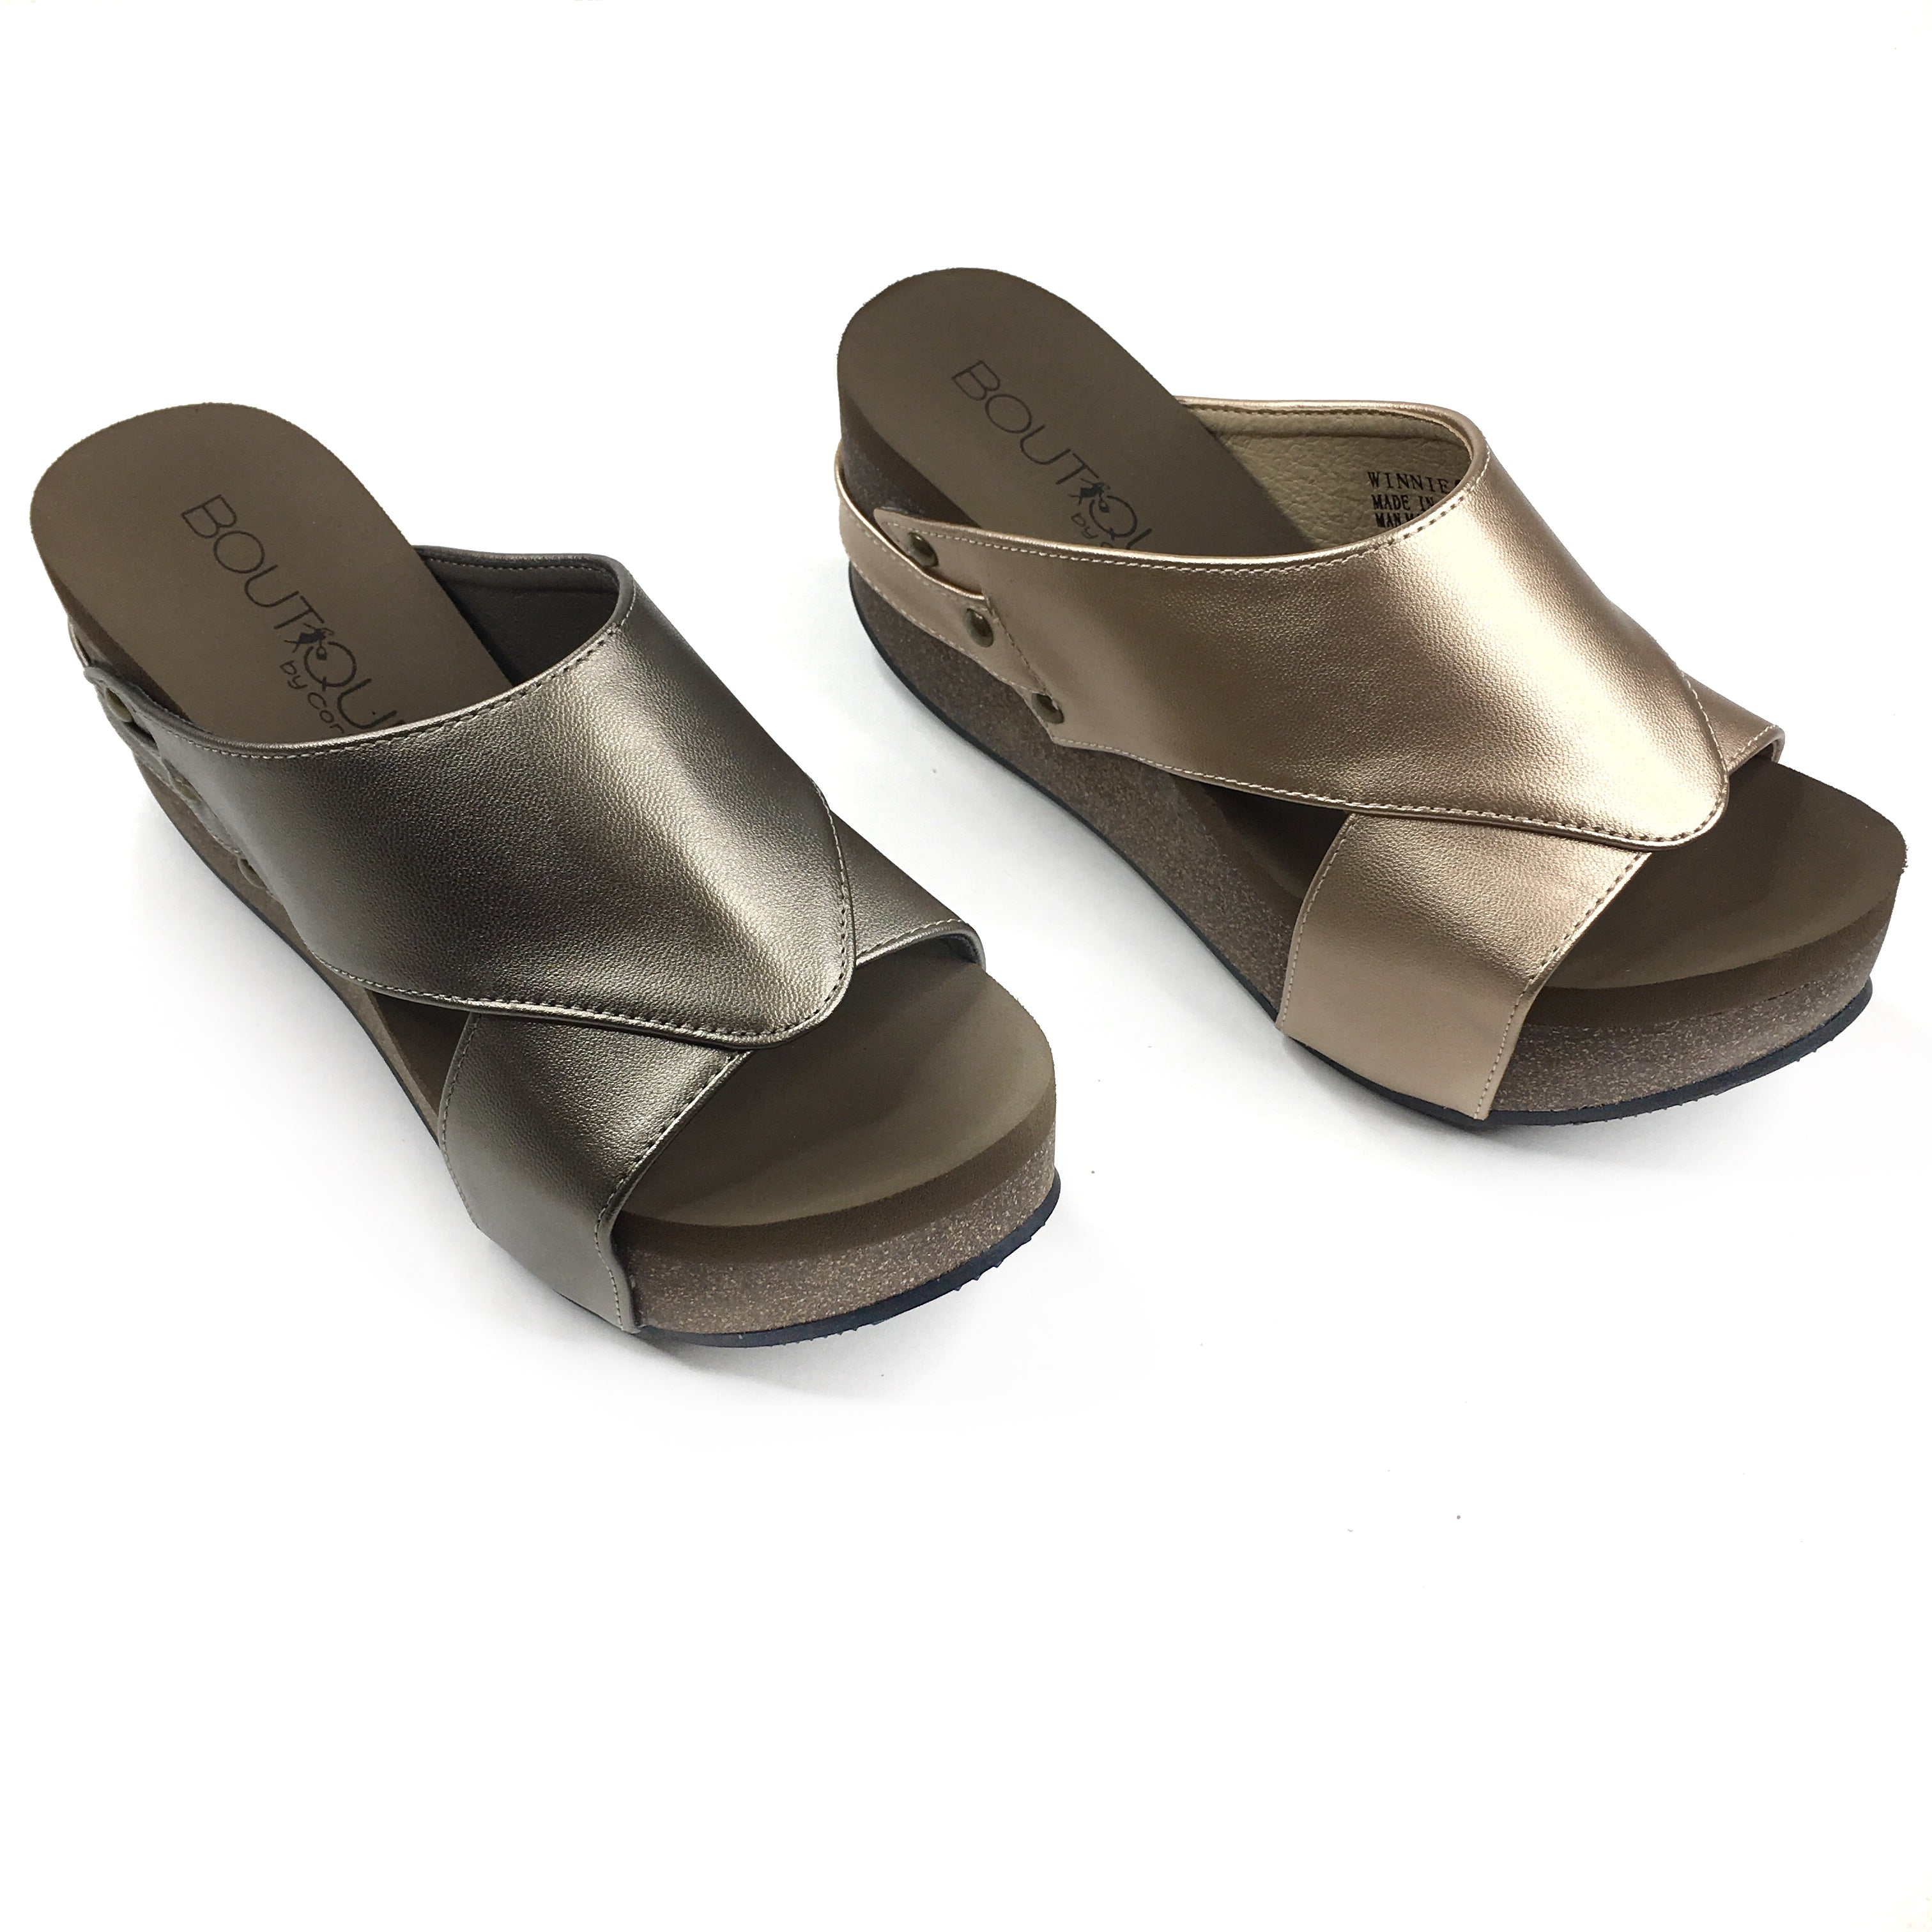 Corkys Slip On Wedges With Memory Foam